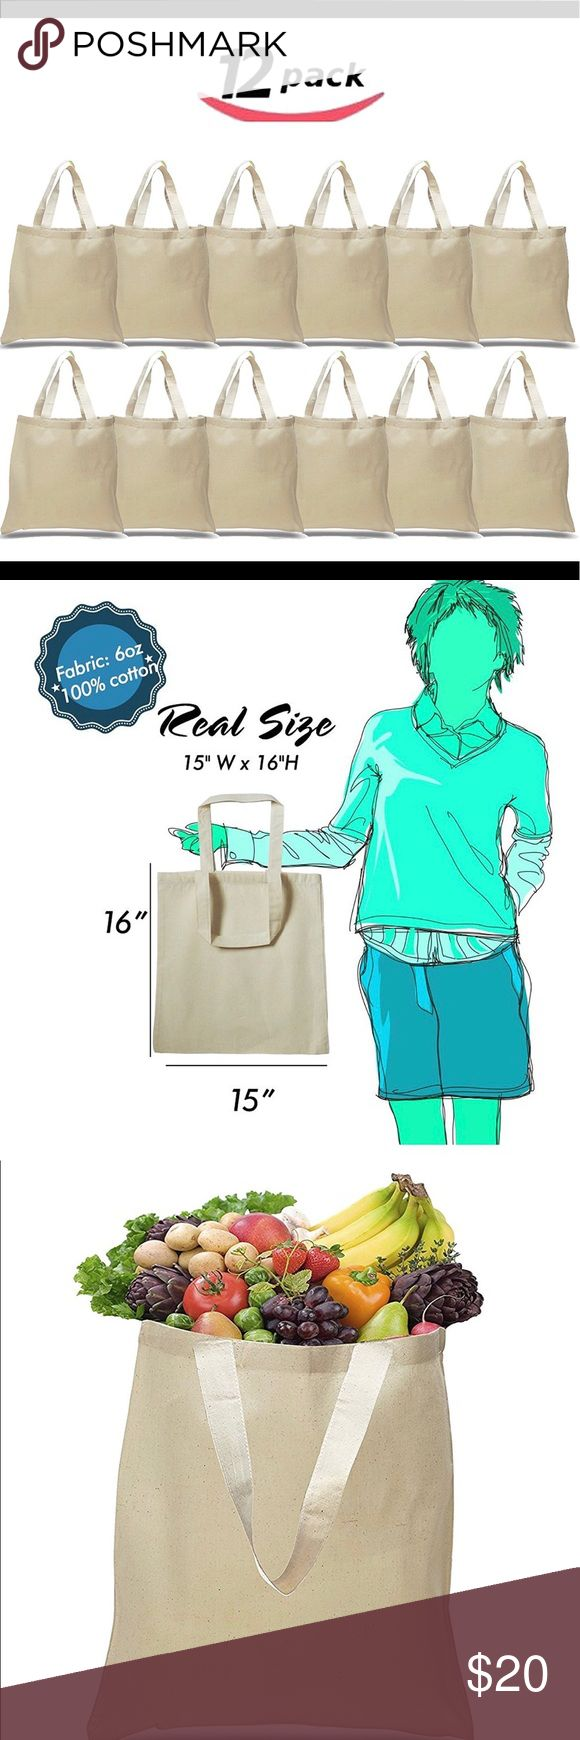 """(12 Pack) - Reusable Cotton Tote Bags 12 PACK of Budget Friendly 100% Cotton Wholesale Tote Bags Size of these bags is 15""""x16"""" with 21"""" Handles. These bags are 100% Cotton Canvas made of thick 6 ounce fabric. These wholesale handbags are not only can be used as grocery bags, but also can be used as handbags for girls, beach bag and gym bag for women, tote bag for teens for kids to decorate, birthday goodie bags, wedding party favor bags or Christmas gifts & much more. Convenient for everyday…"""